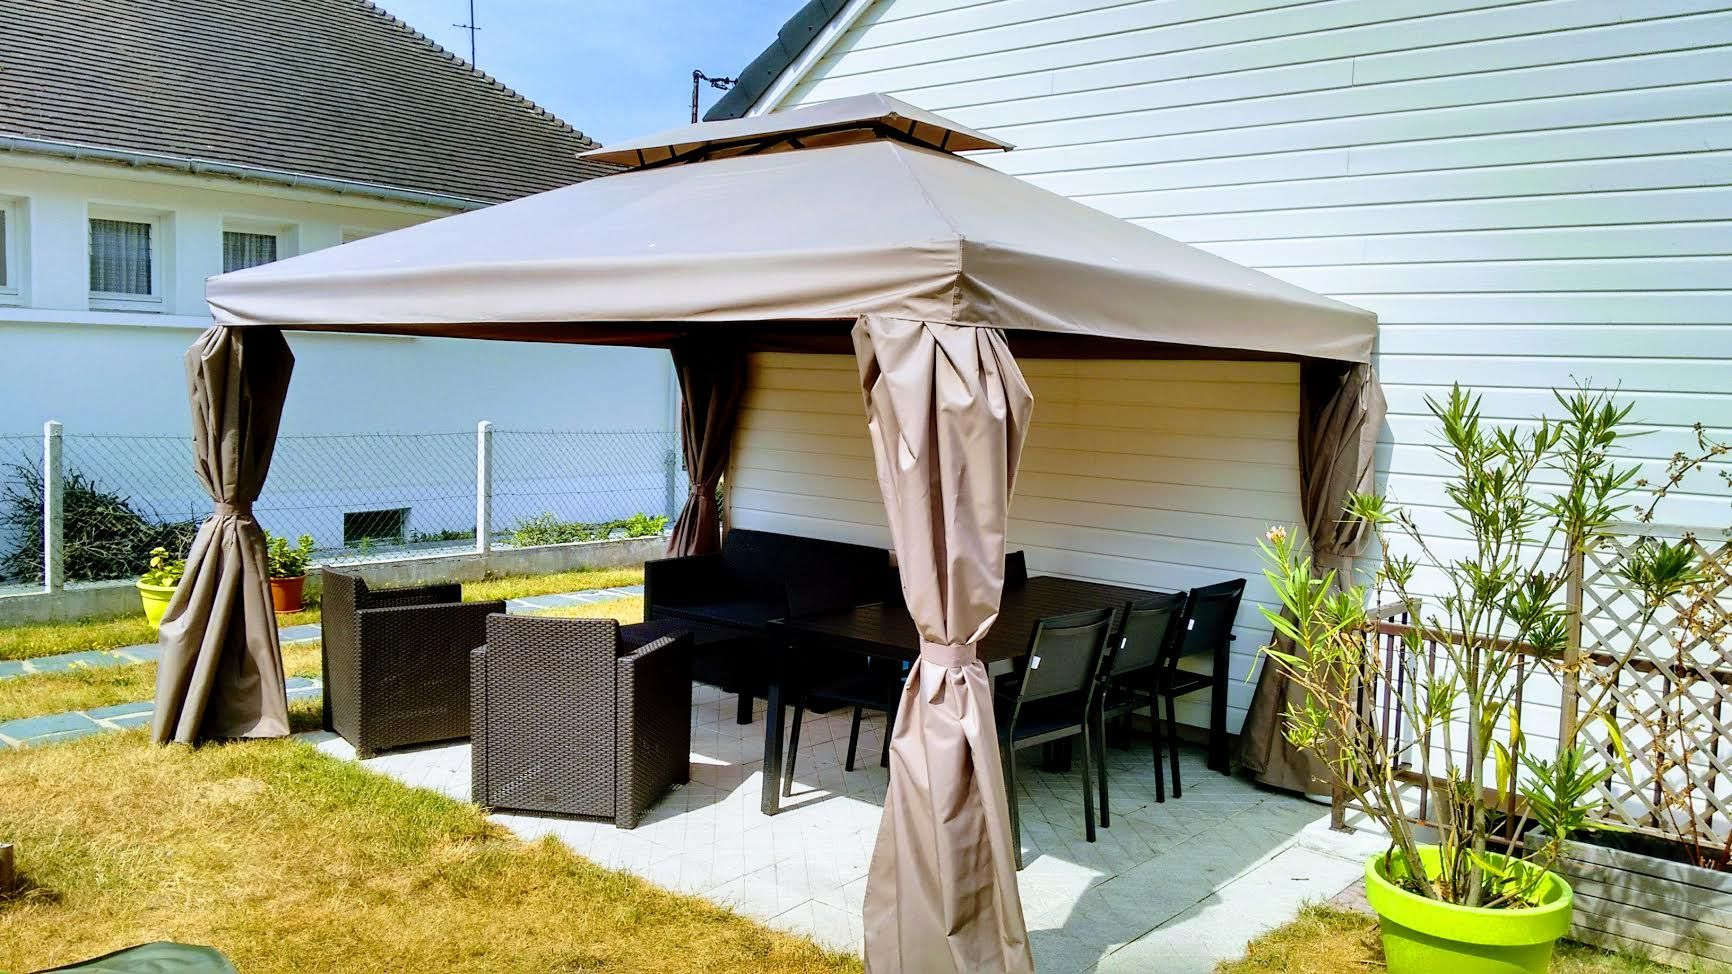 rideau terrasse rideau terrasse with rideau terrasse best ides de pergola avec rideaux moderne. Black Bedroom Furniture Sets. Home Design Ideas